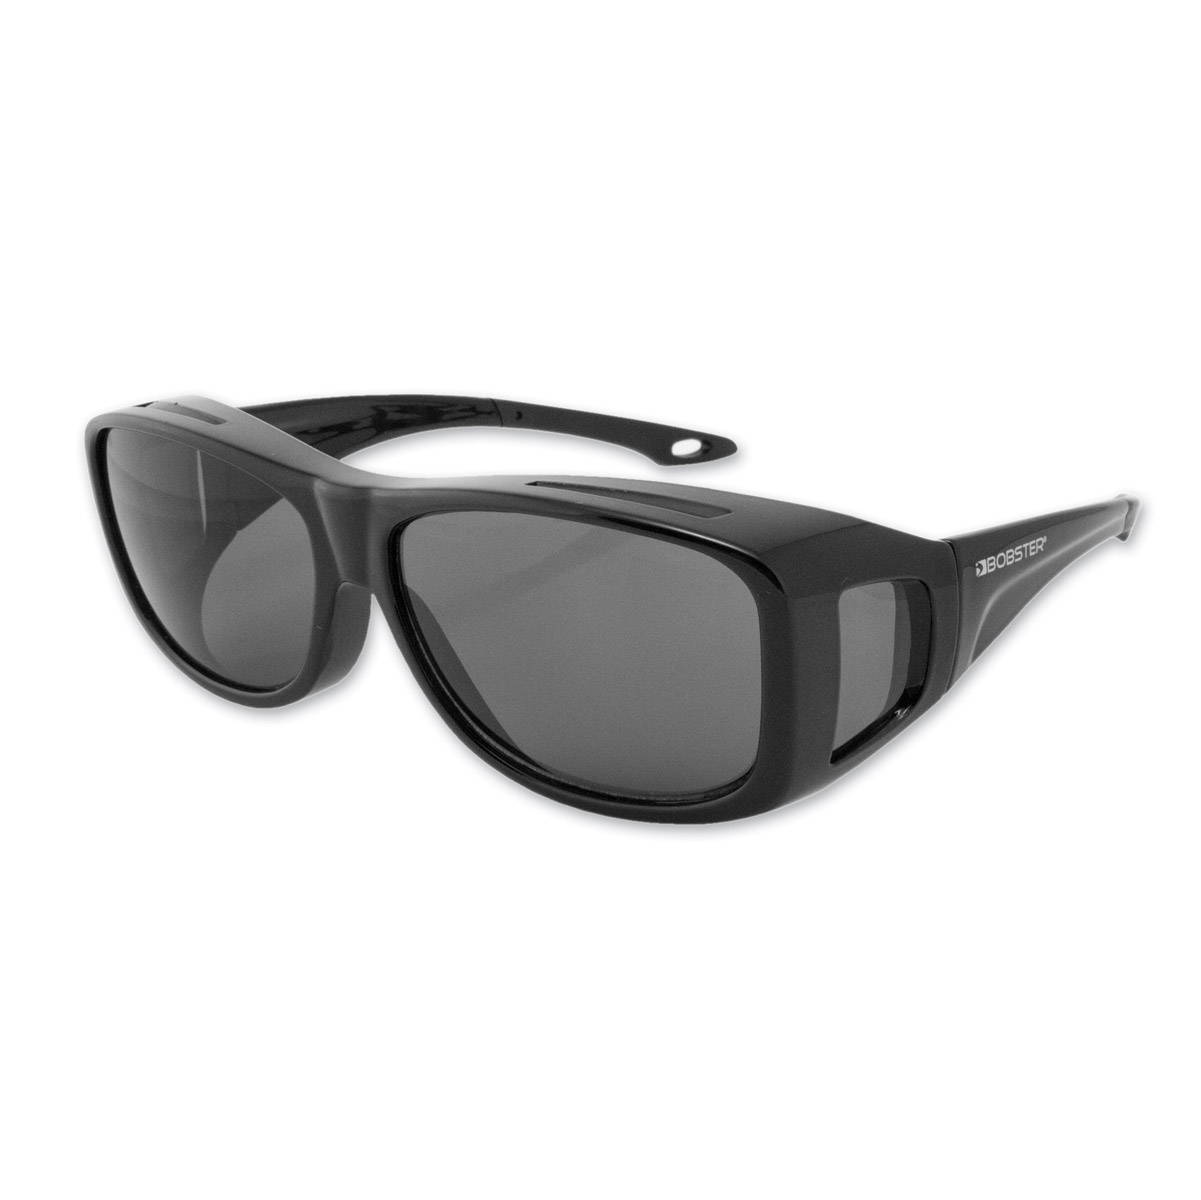 Bobster Condor 2 Large Black Frame Sunglasses with Smoked Lenses